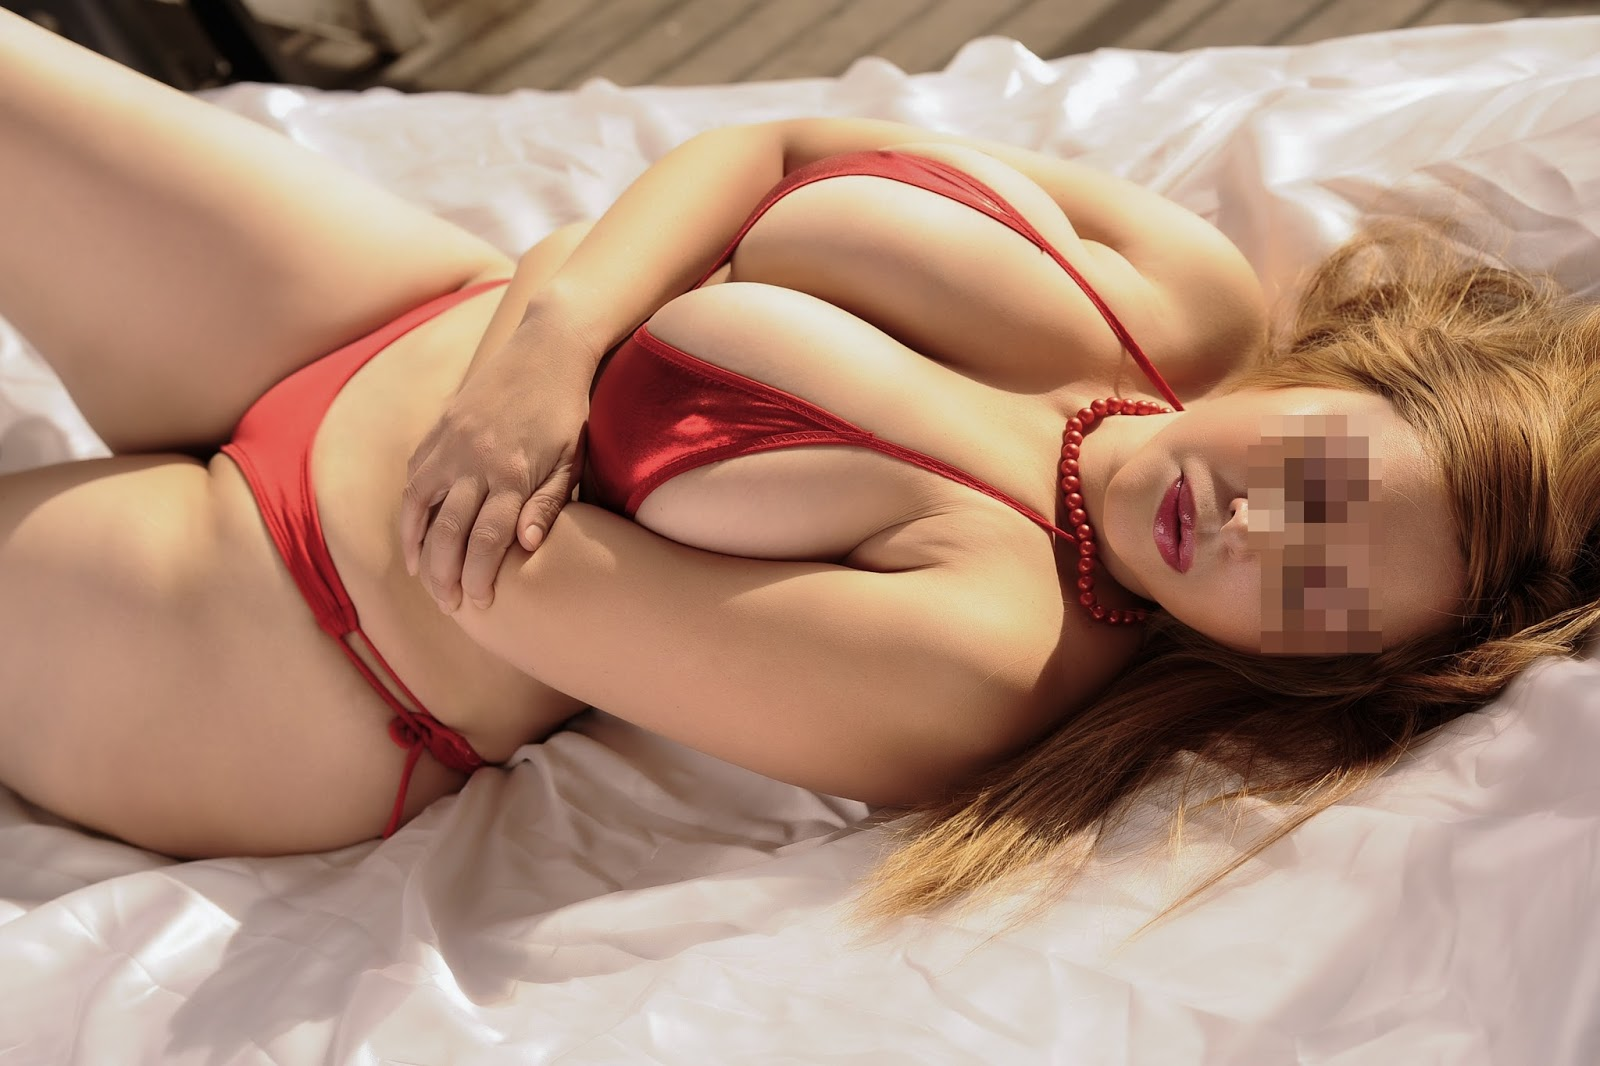 cl  personals escorts today